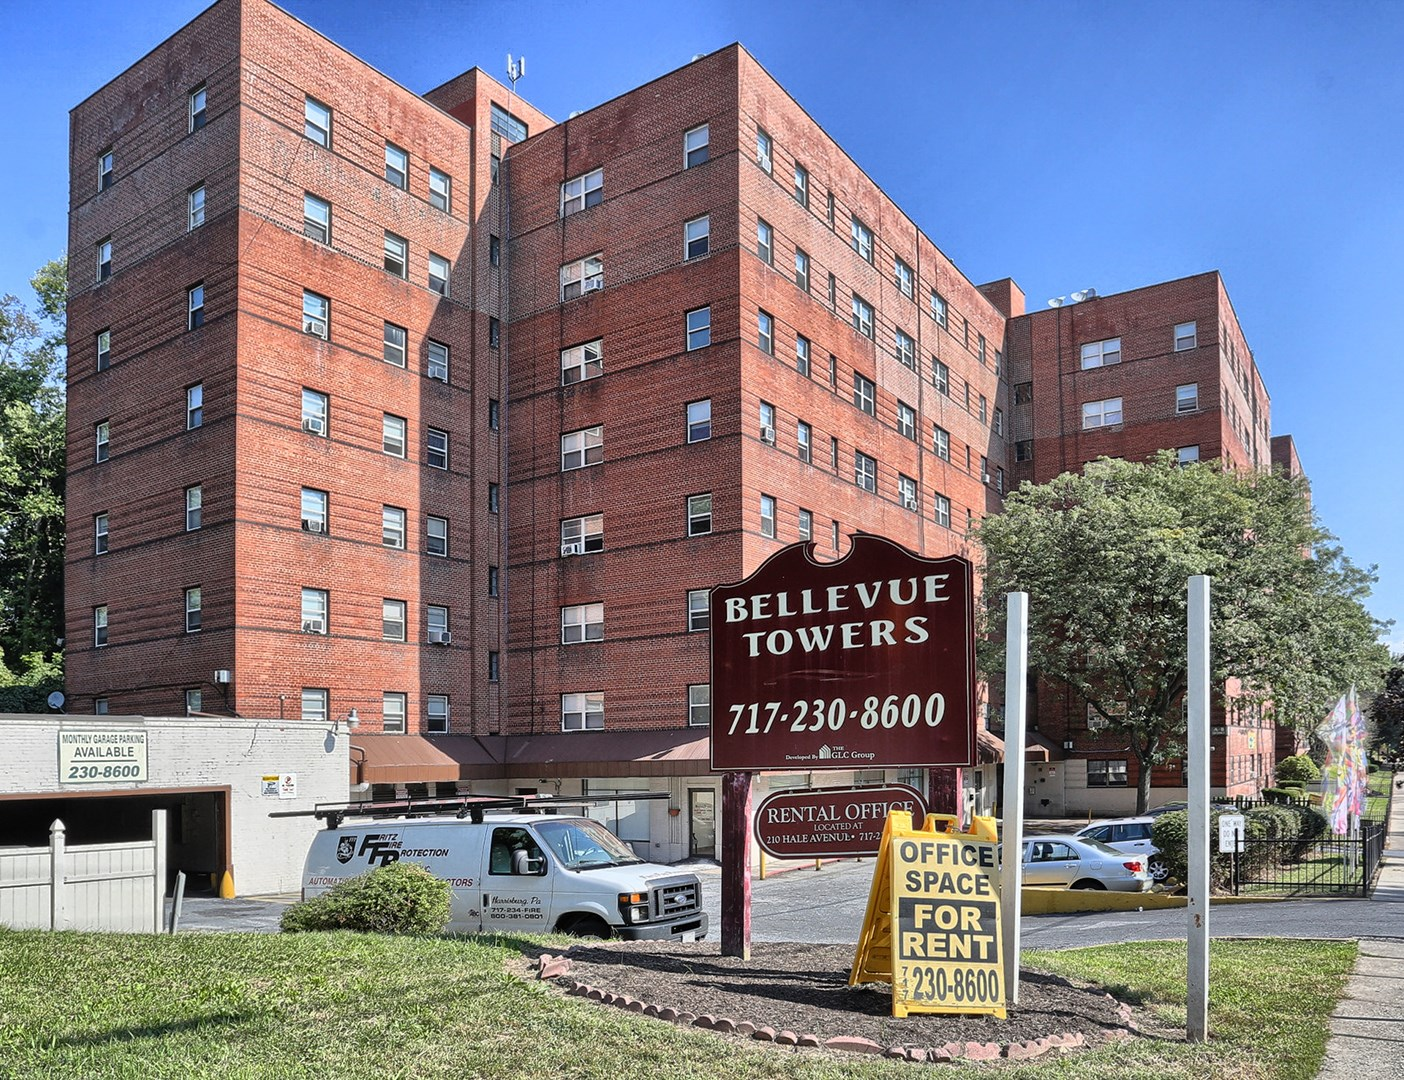 1 Bedroom Apartments Rent Pittsburgh Pa Apartments For Rent In Pittsburgh Pa Rentberry Bedford